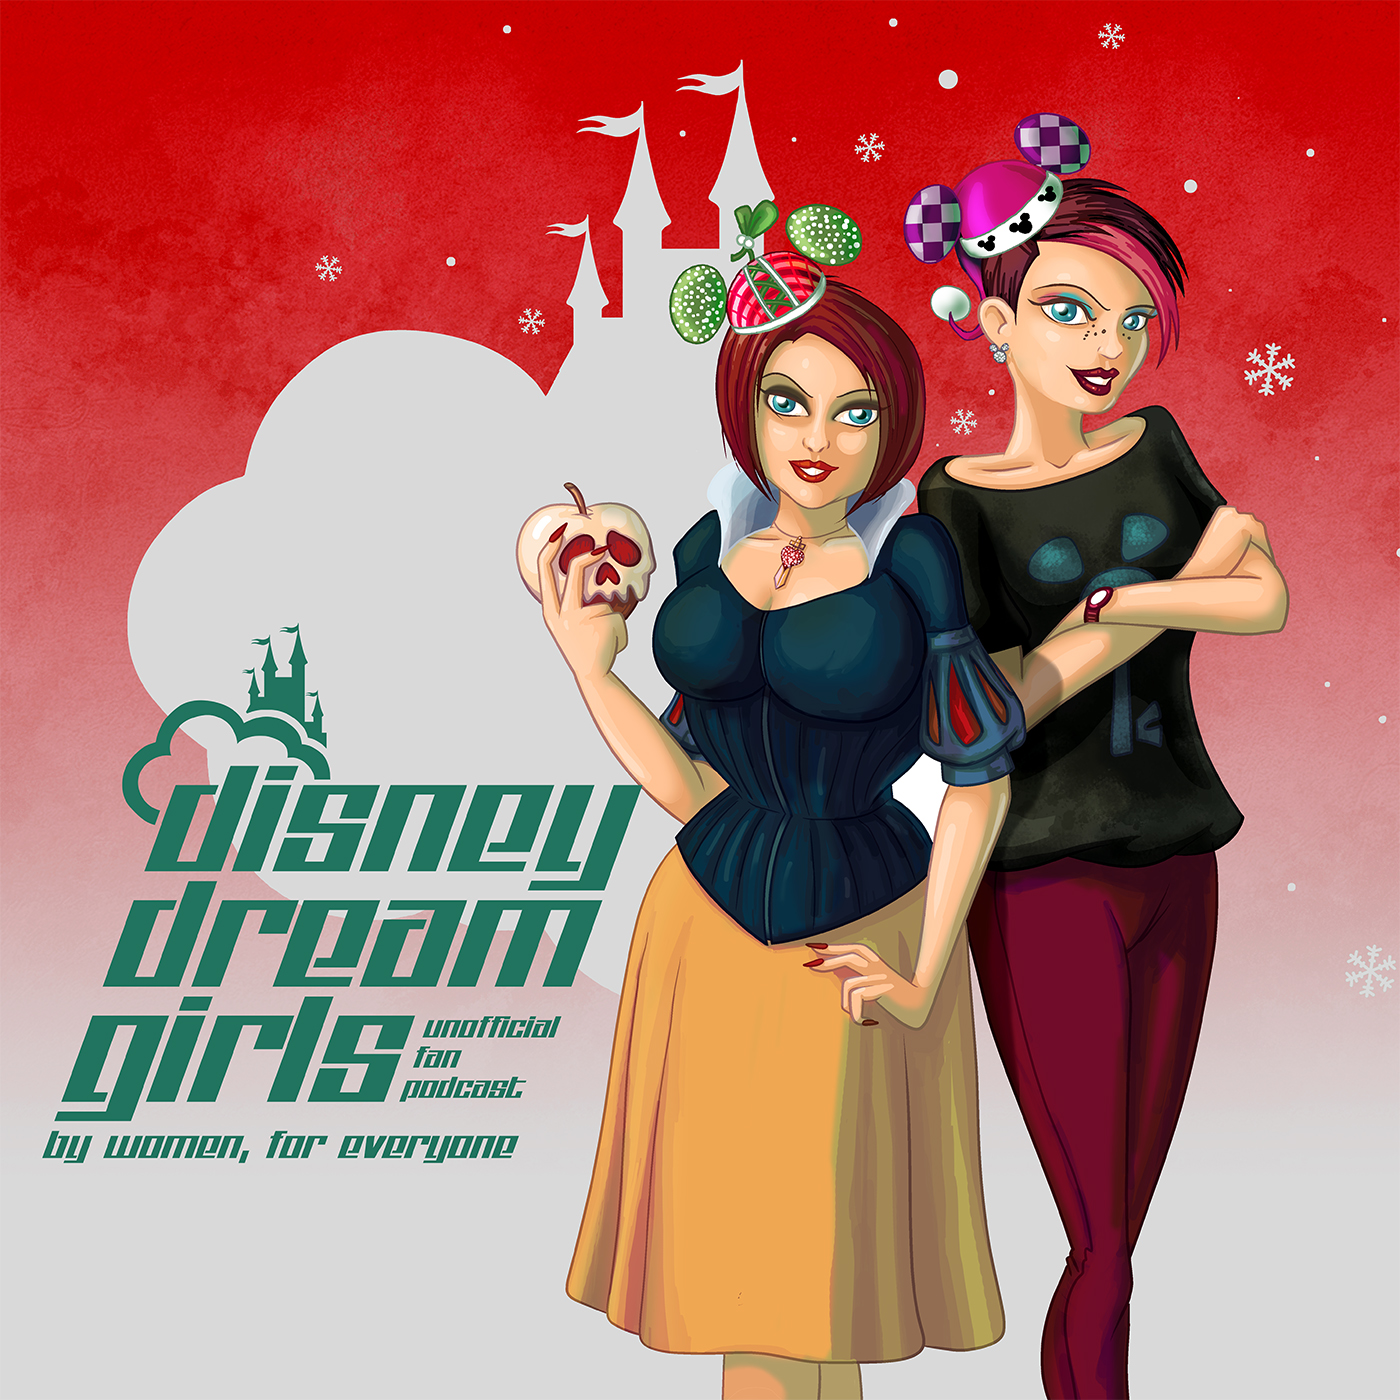 Disney Dream Girls 084 - Minxmas with the Disgeek Podcast